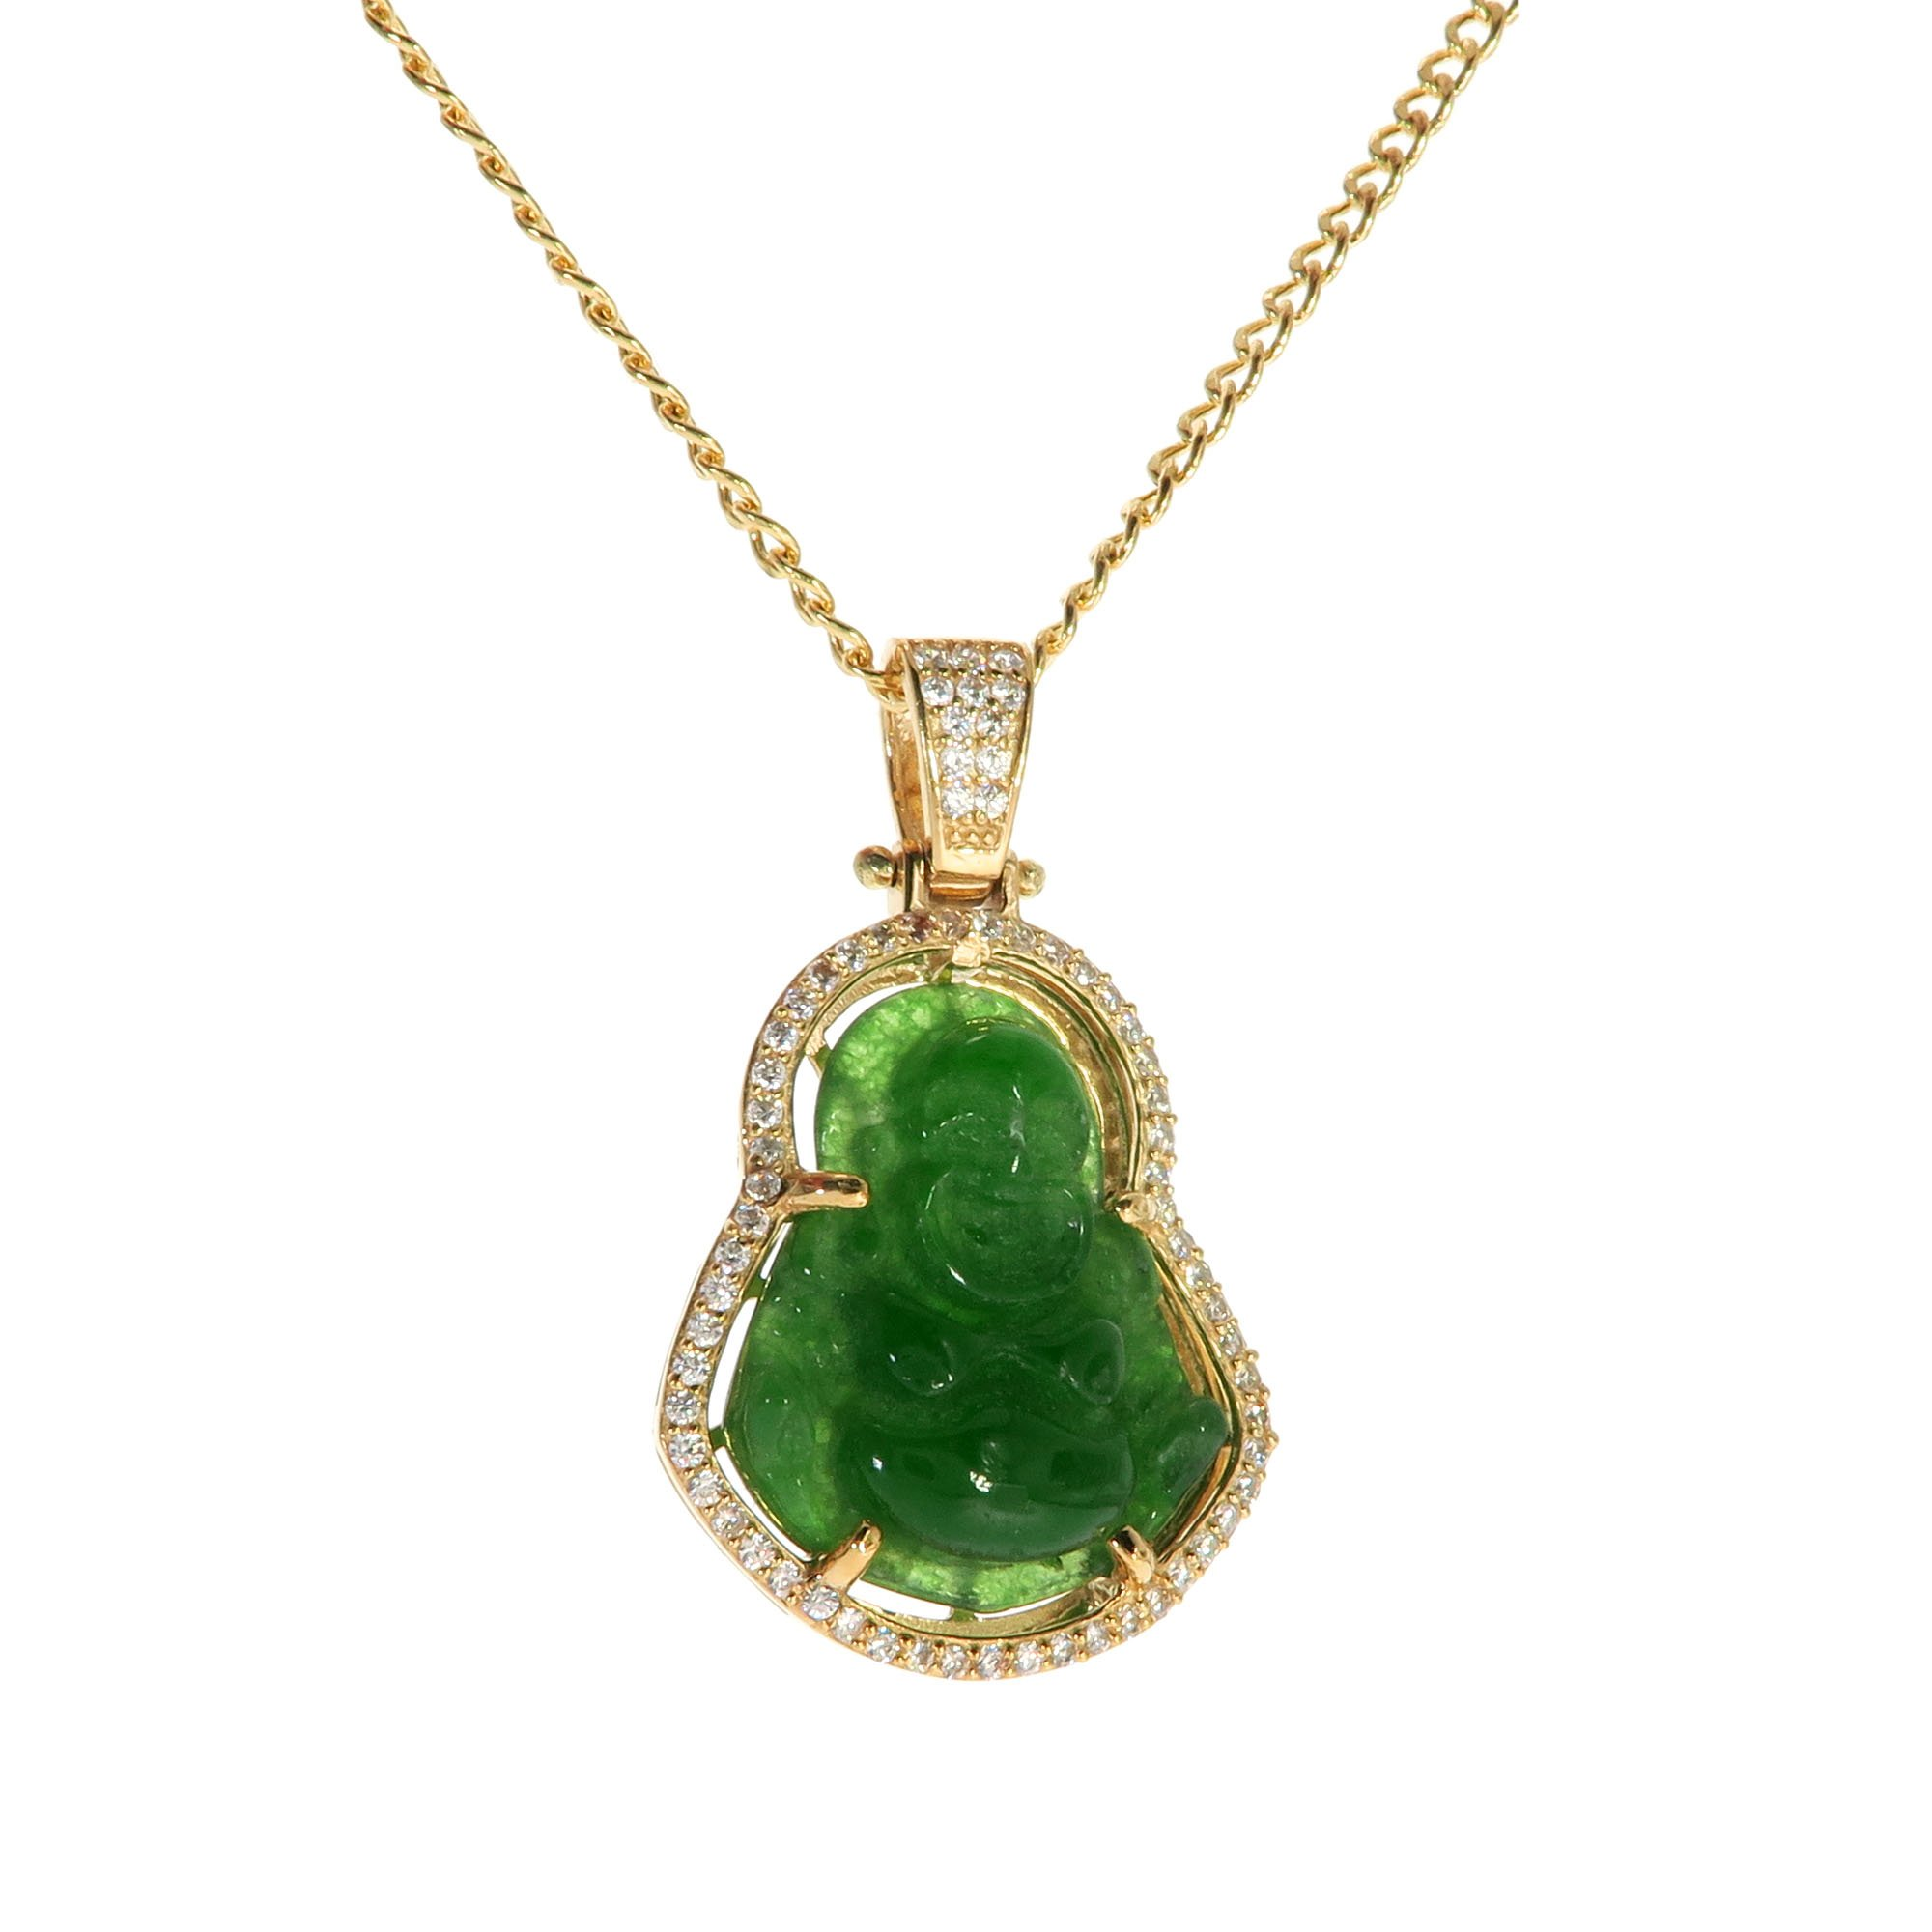 Genuine Stamped 10K Yellow Gold Cuban Curb Link Chain Small Charm Pendant Necklace [ASSORTED SETS] (Jade Buddha + 24 Inches Necklace)